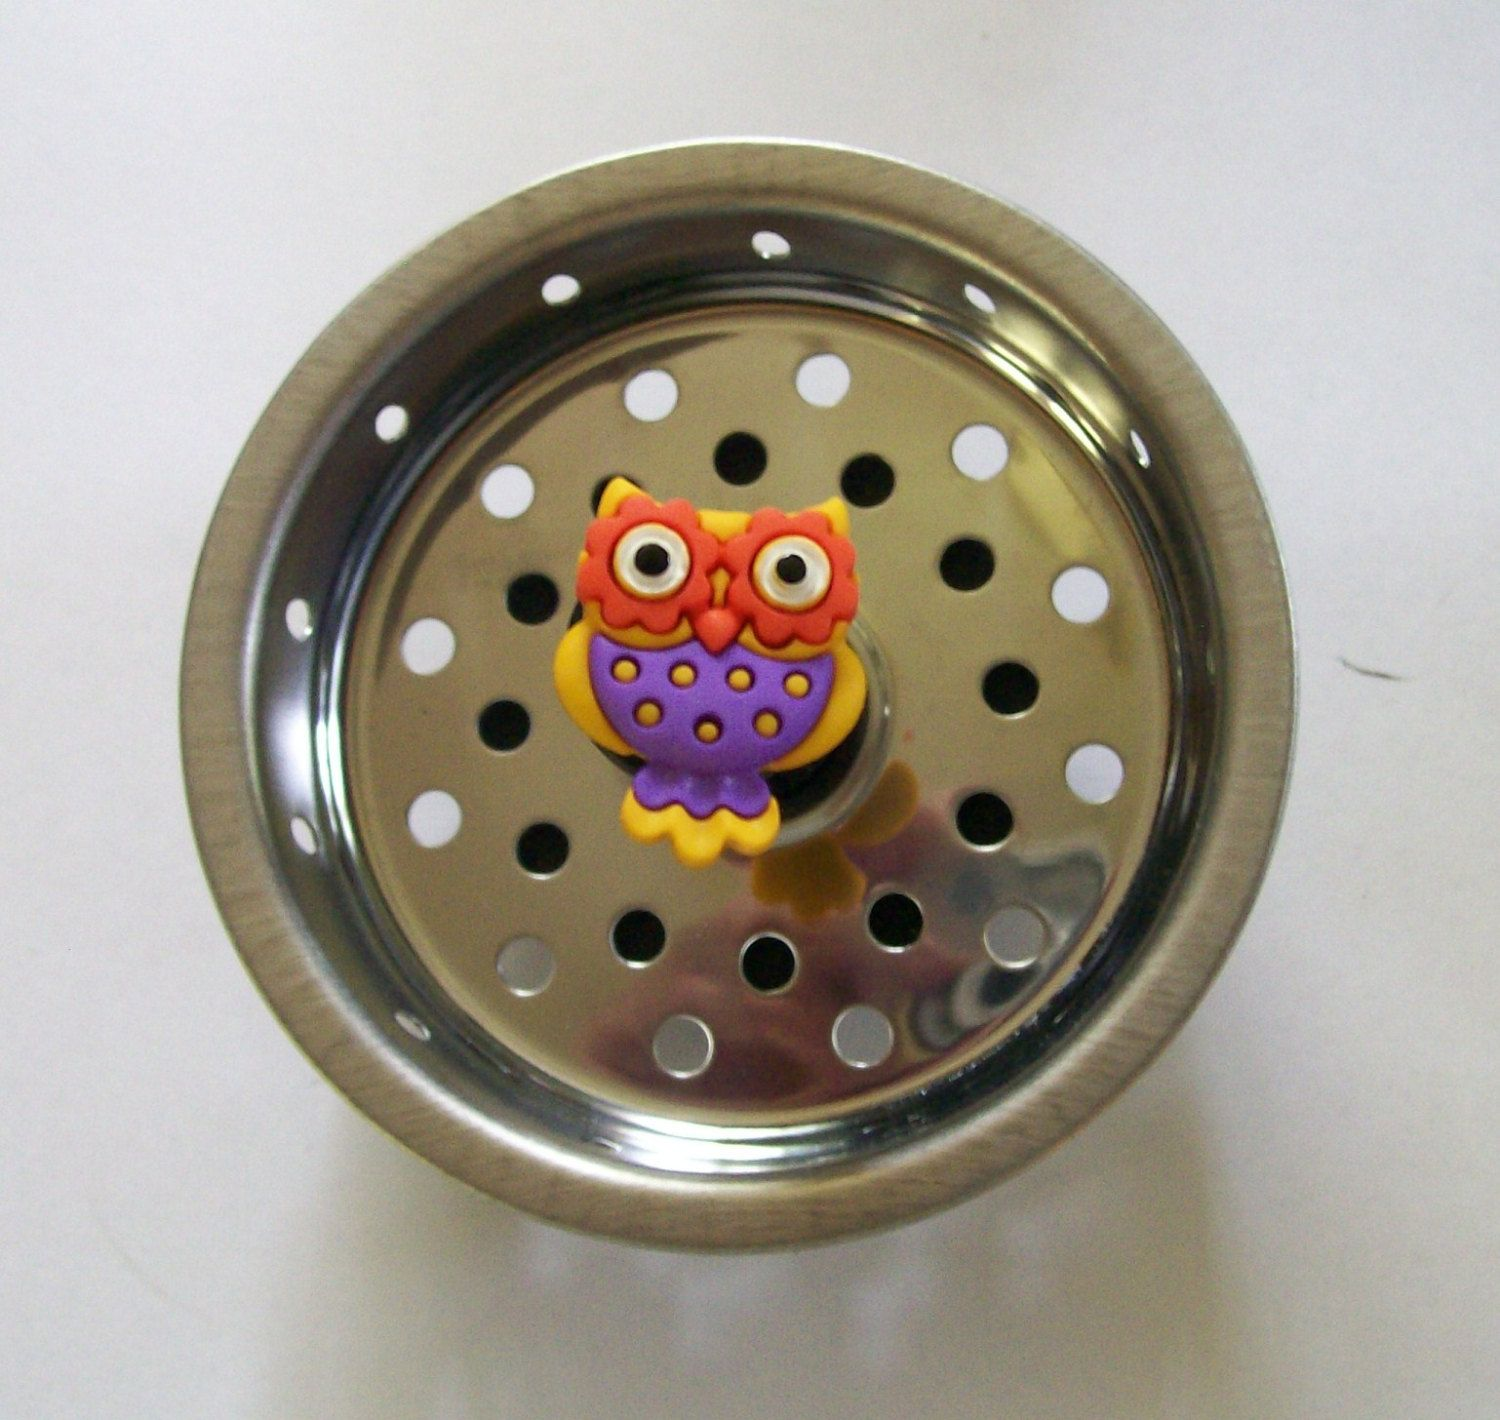 Colorful owl kitchen sink strainer basket sink drain plug Owl kitchen accessories